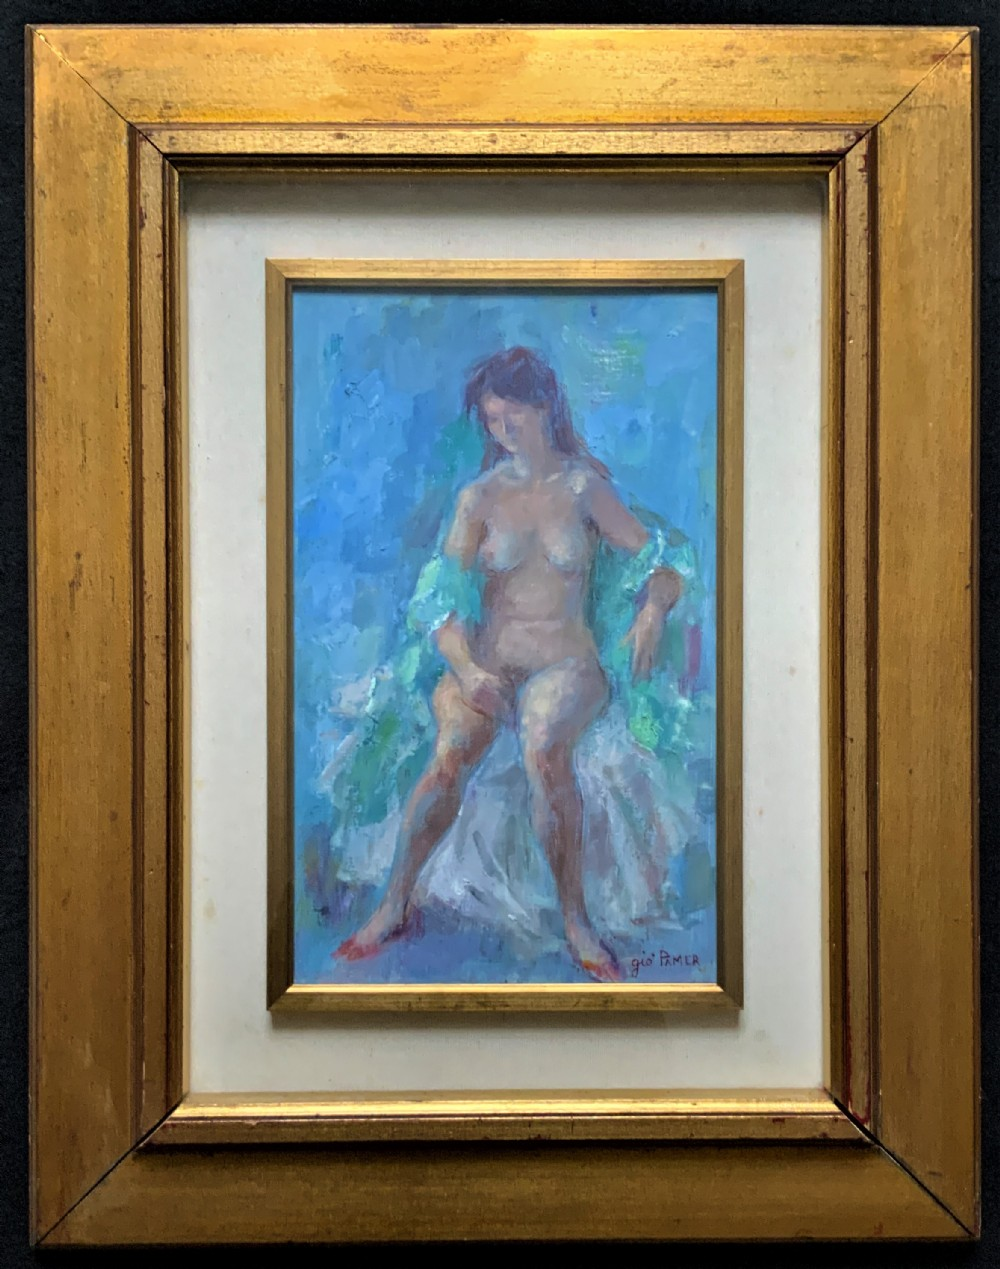 original vintage antique impressionist erotica nude oil portrait painting